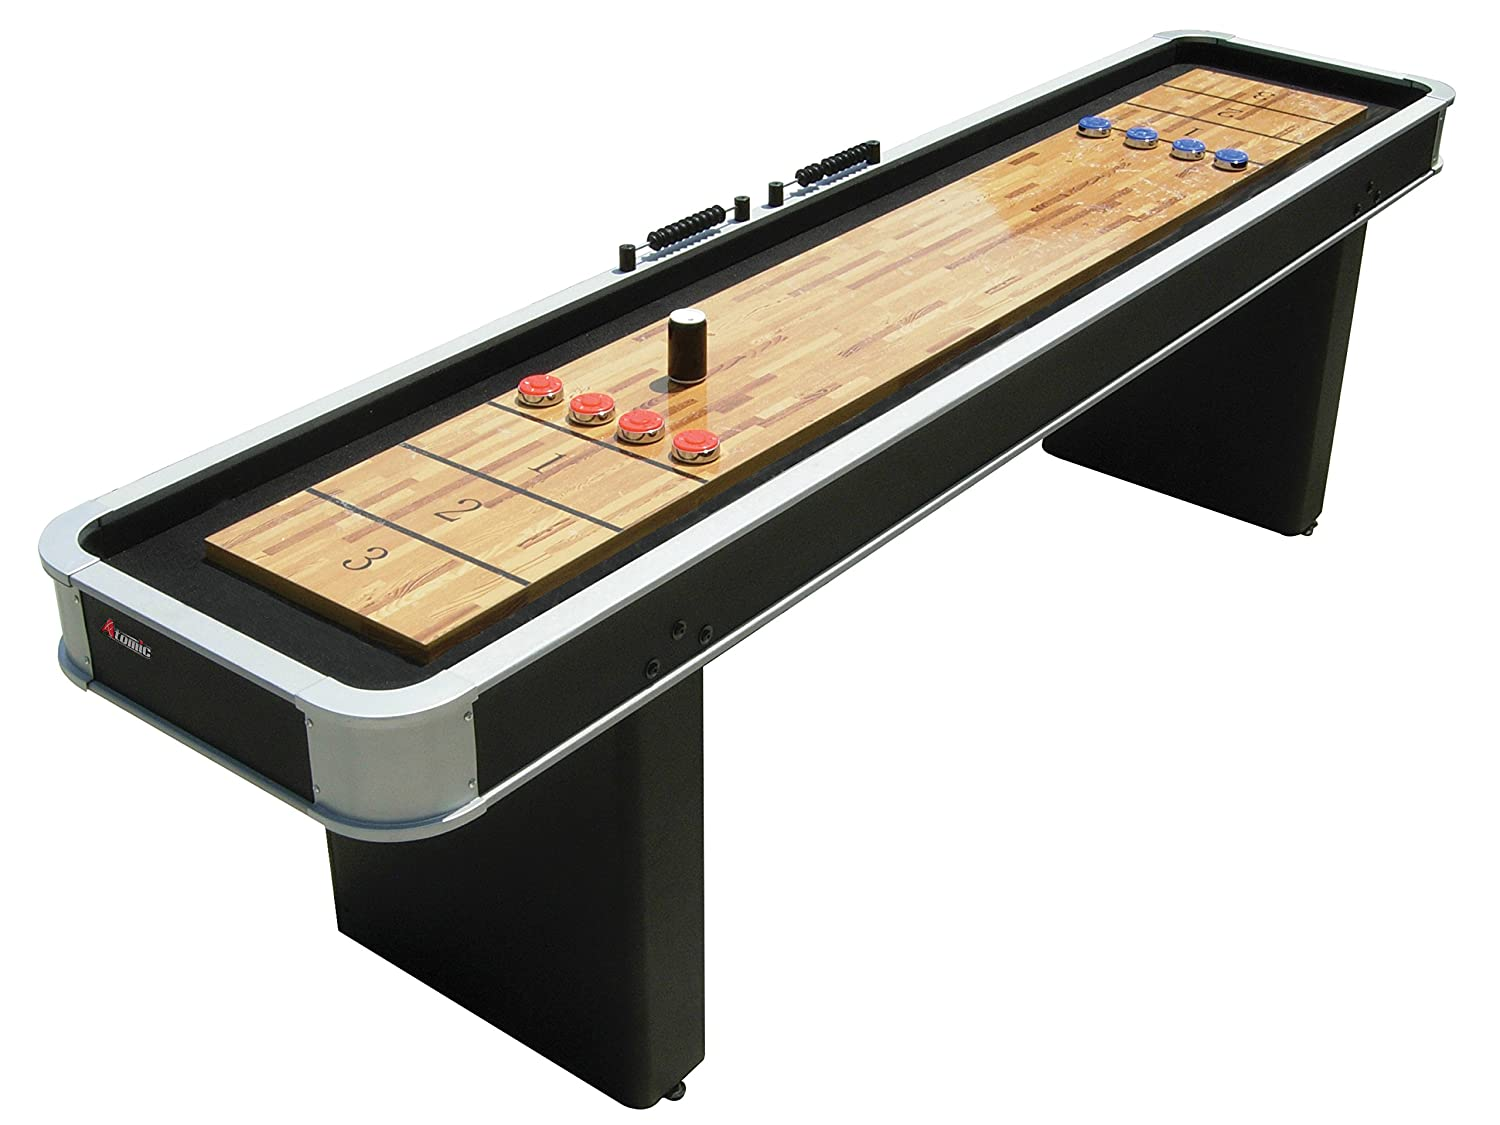 Atomic 9u0027 Platinum Shuffleboard Table With Poly Coated Playing Surface For  Smooth, Fast